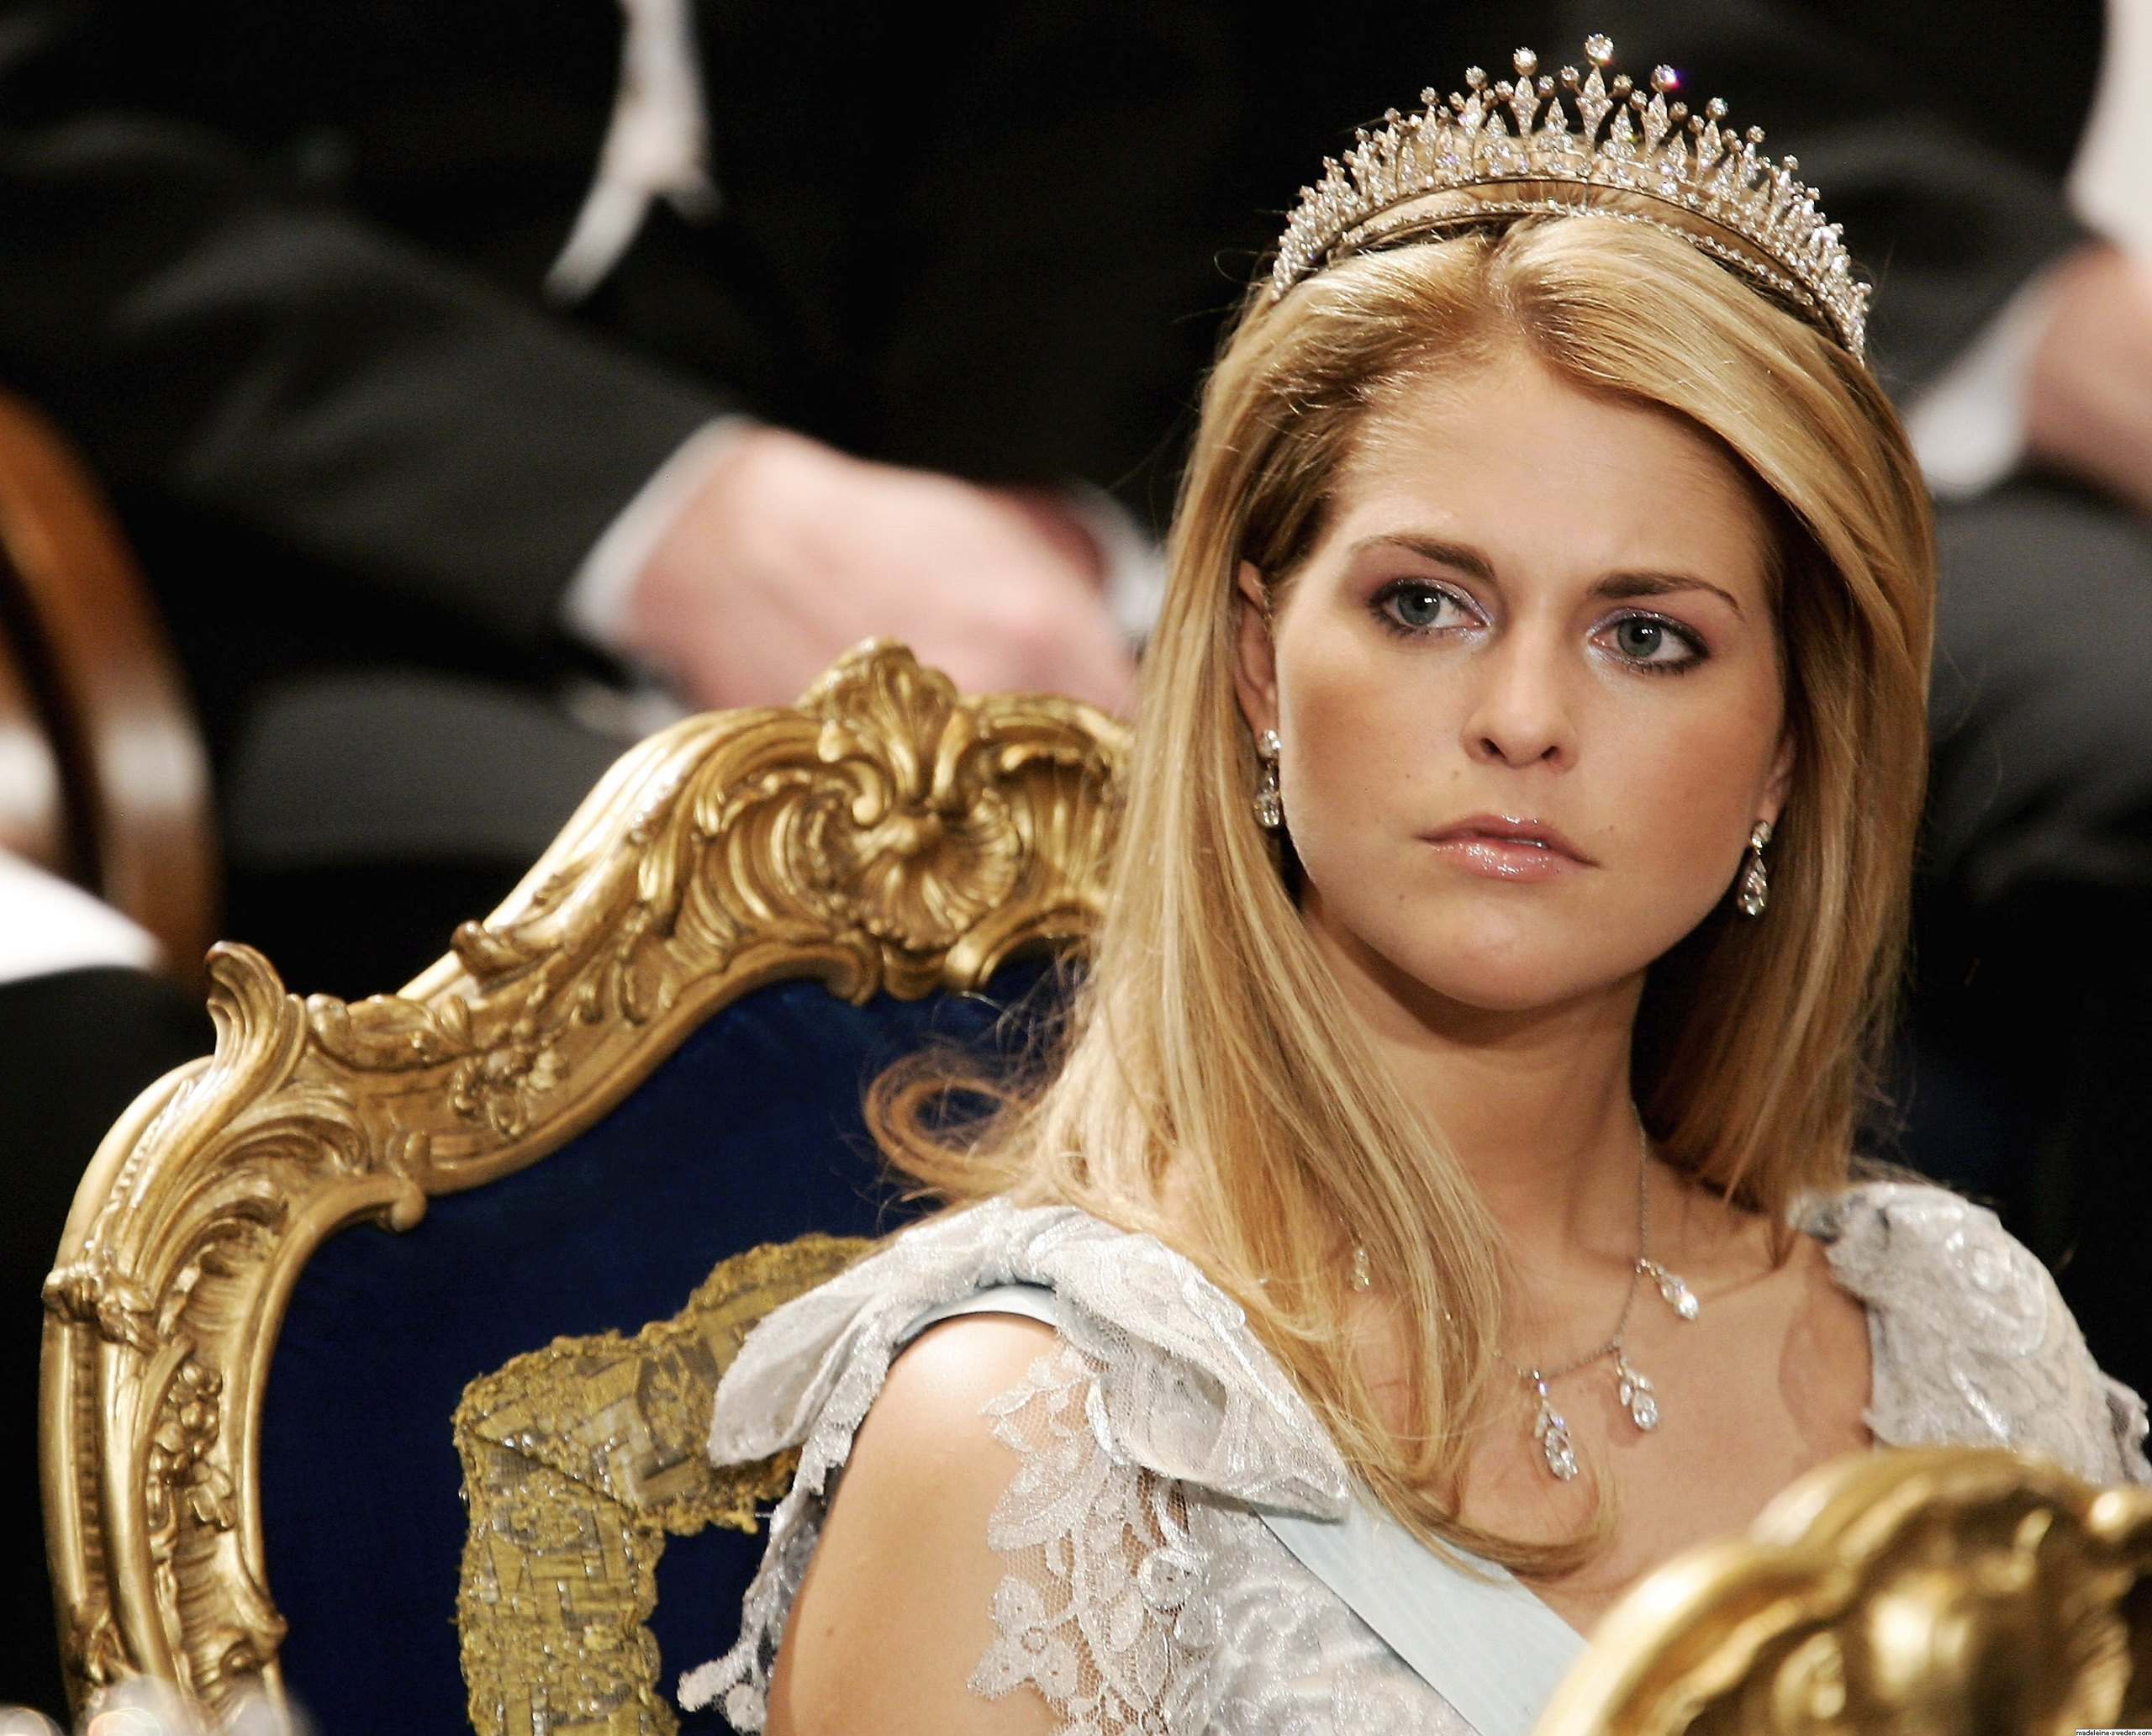 Princess Madeleine - Masquerade Photo (15176600) - Fanpop